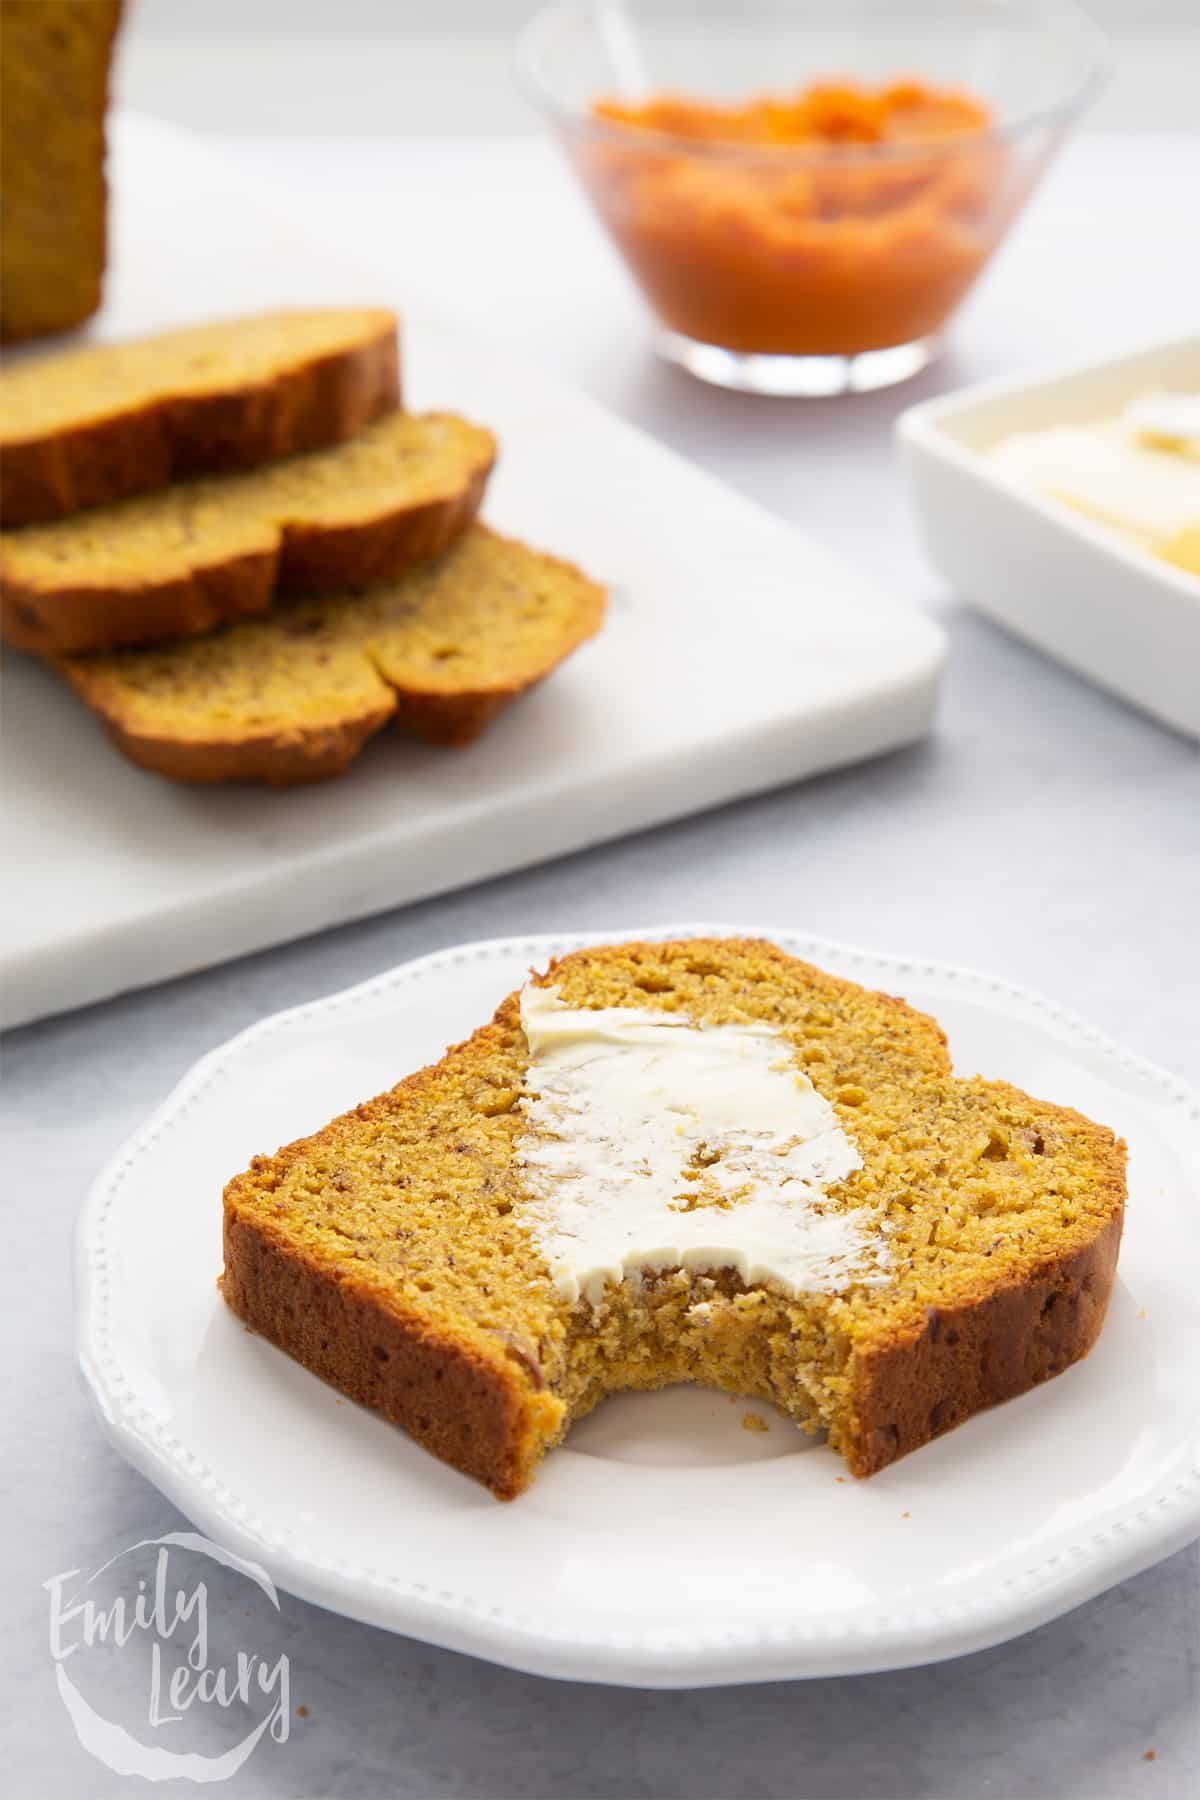 A buttered slice of pumpkin banana bread on a white plate with a bite out of it.